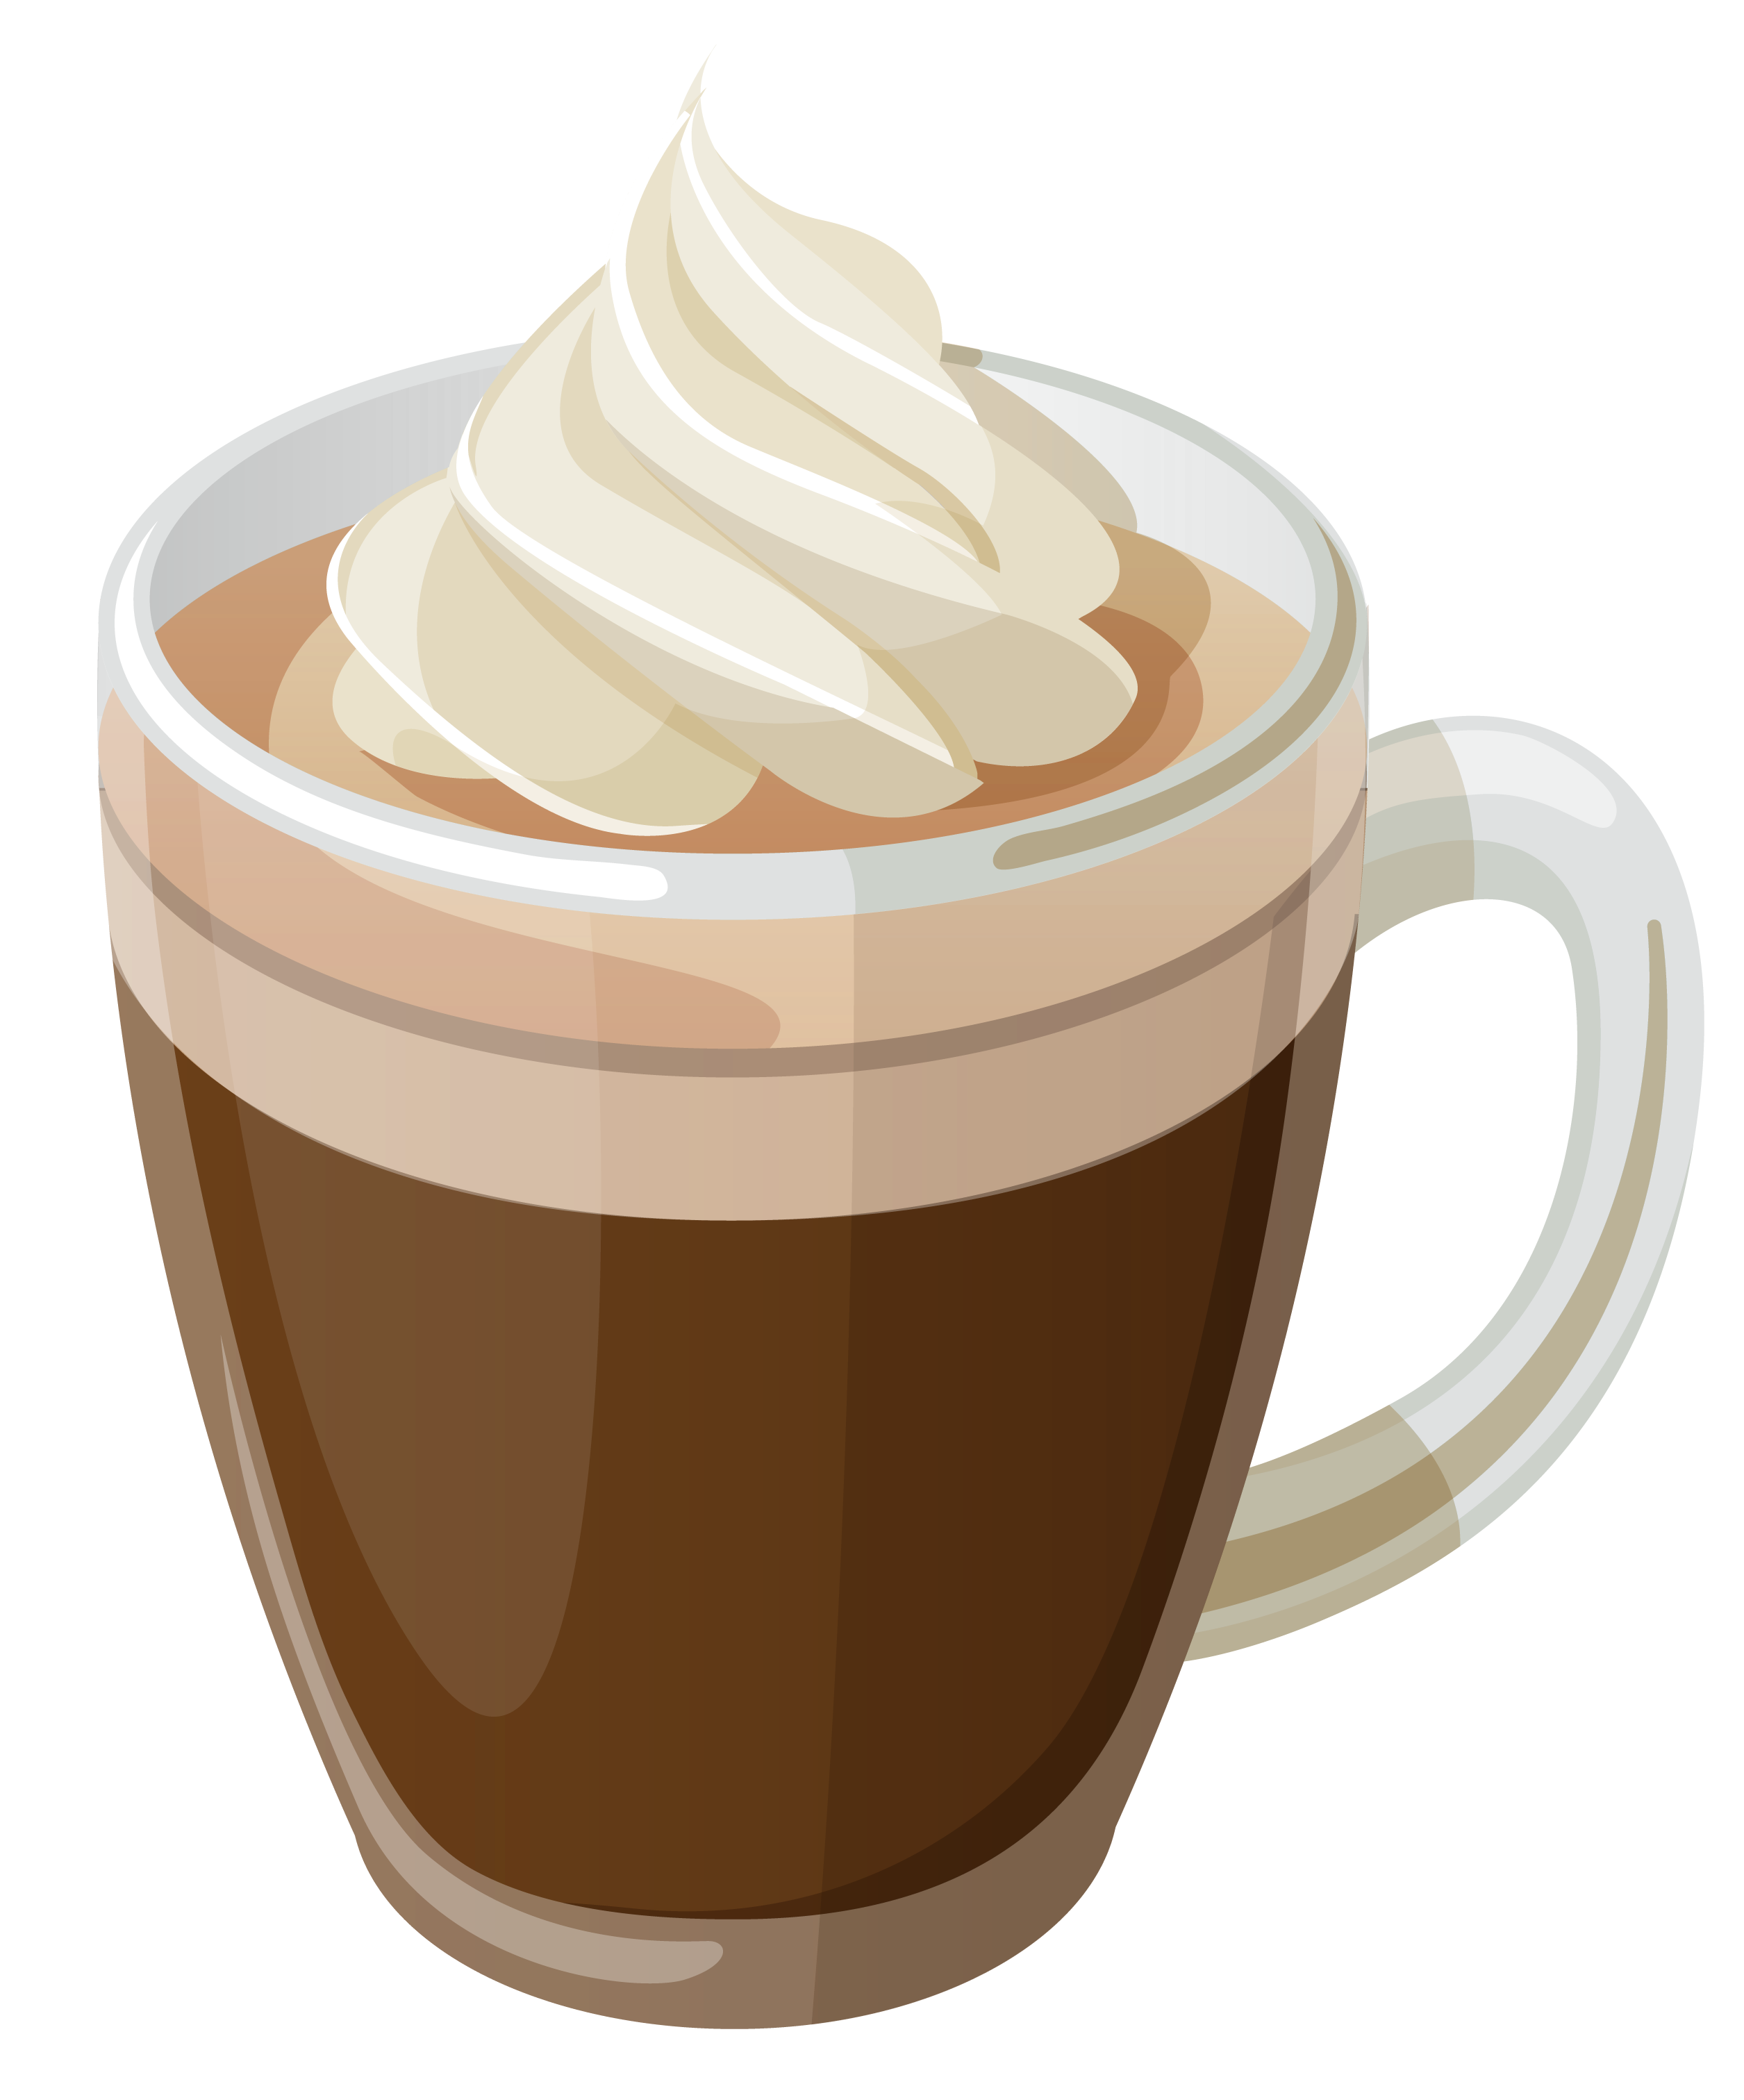 Coffee To Go Clip Art - Google Search-coffee to go clip art - Google Search-14